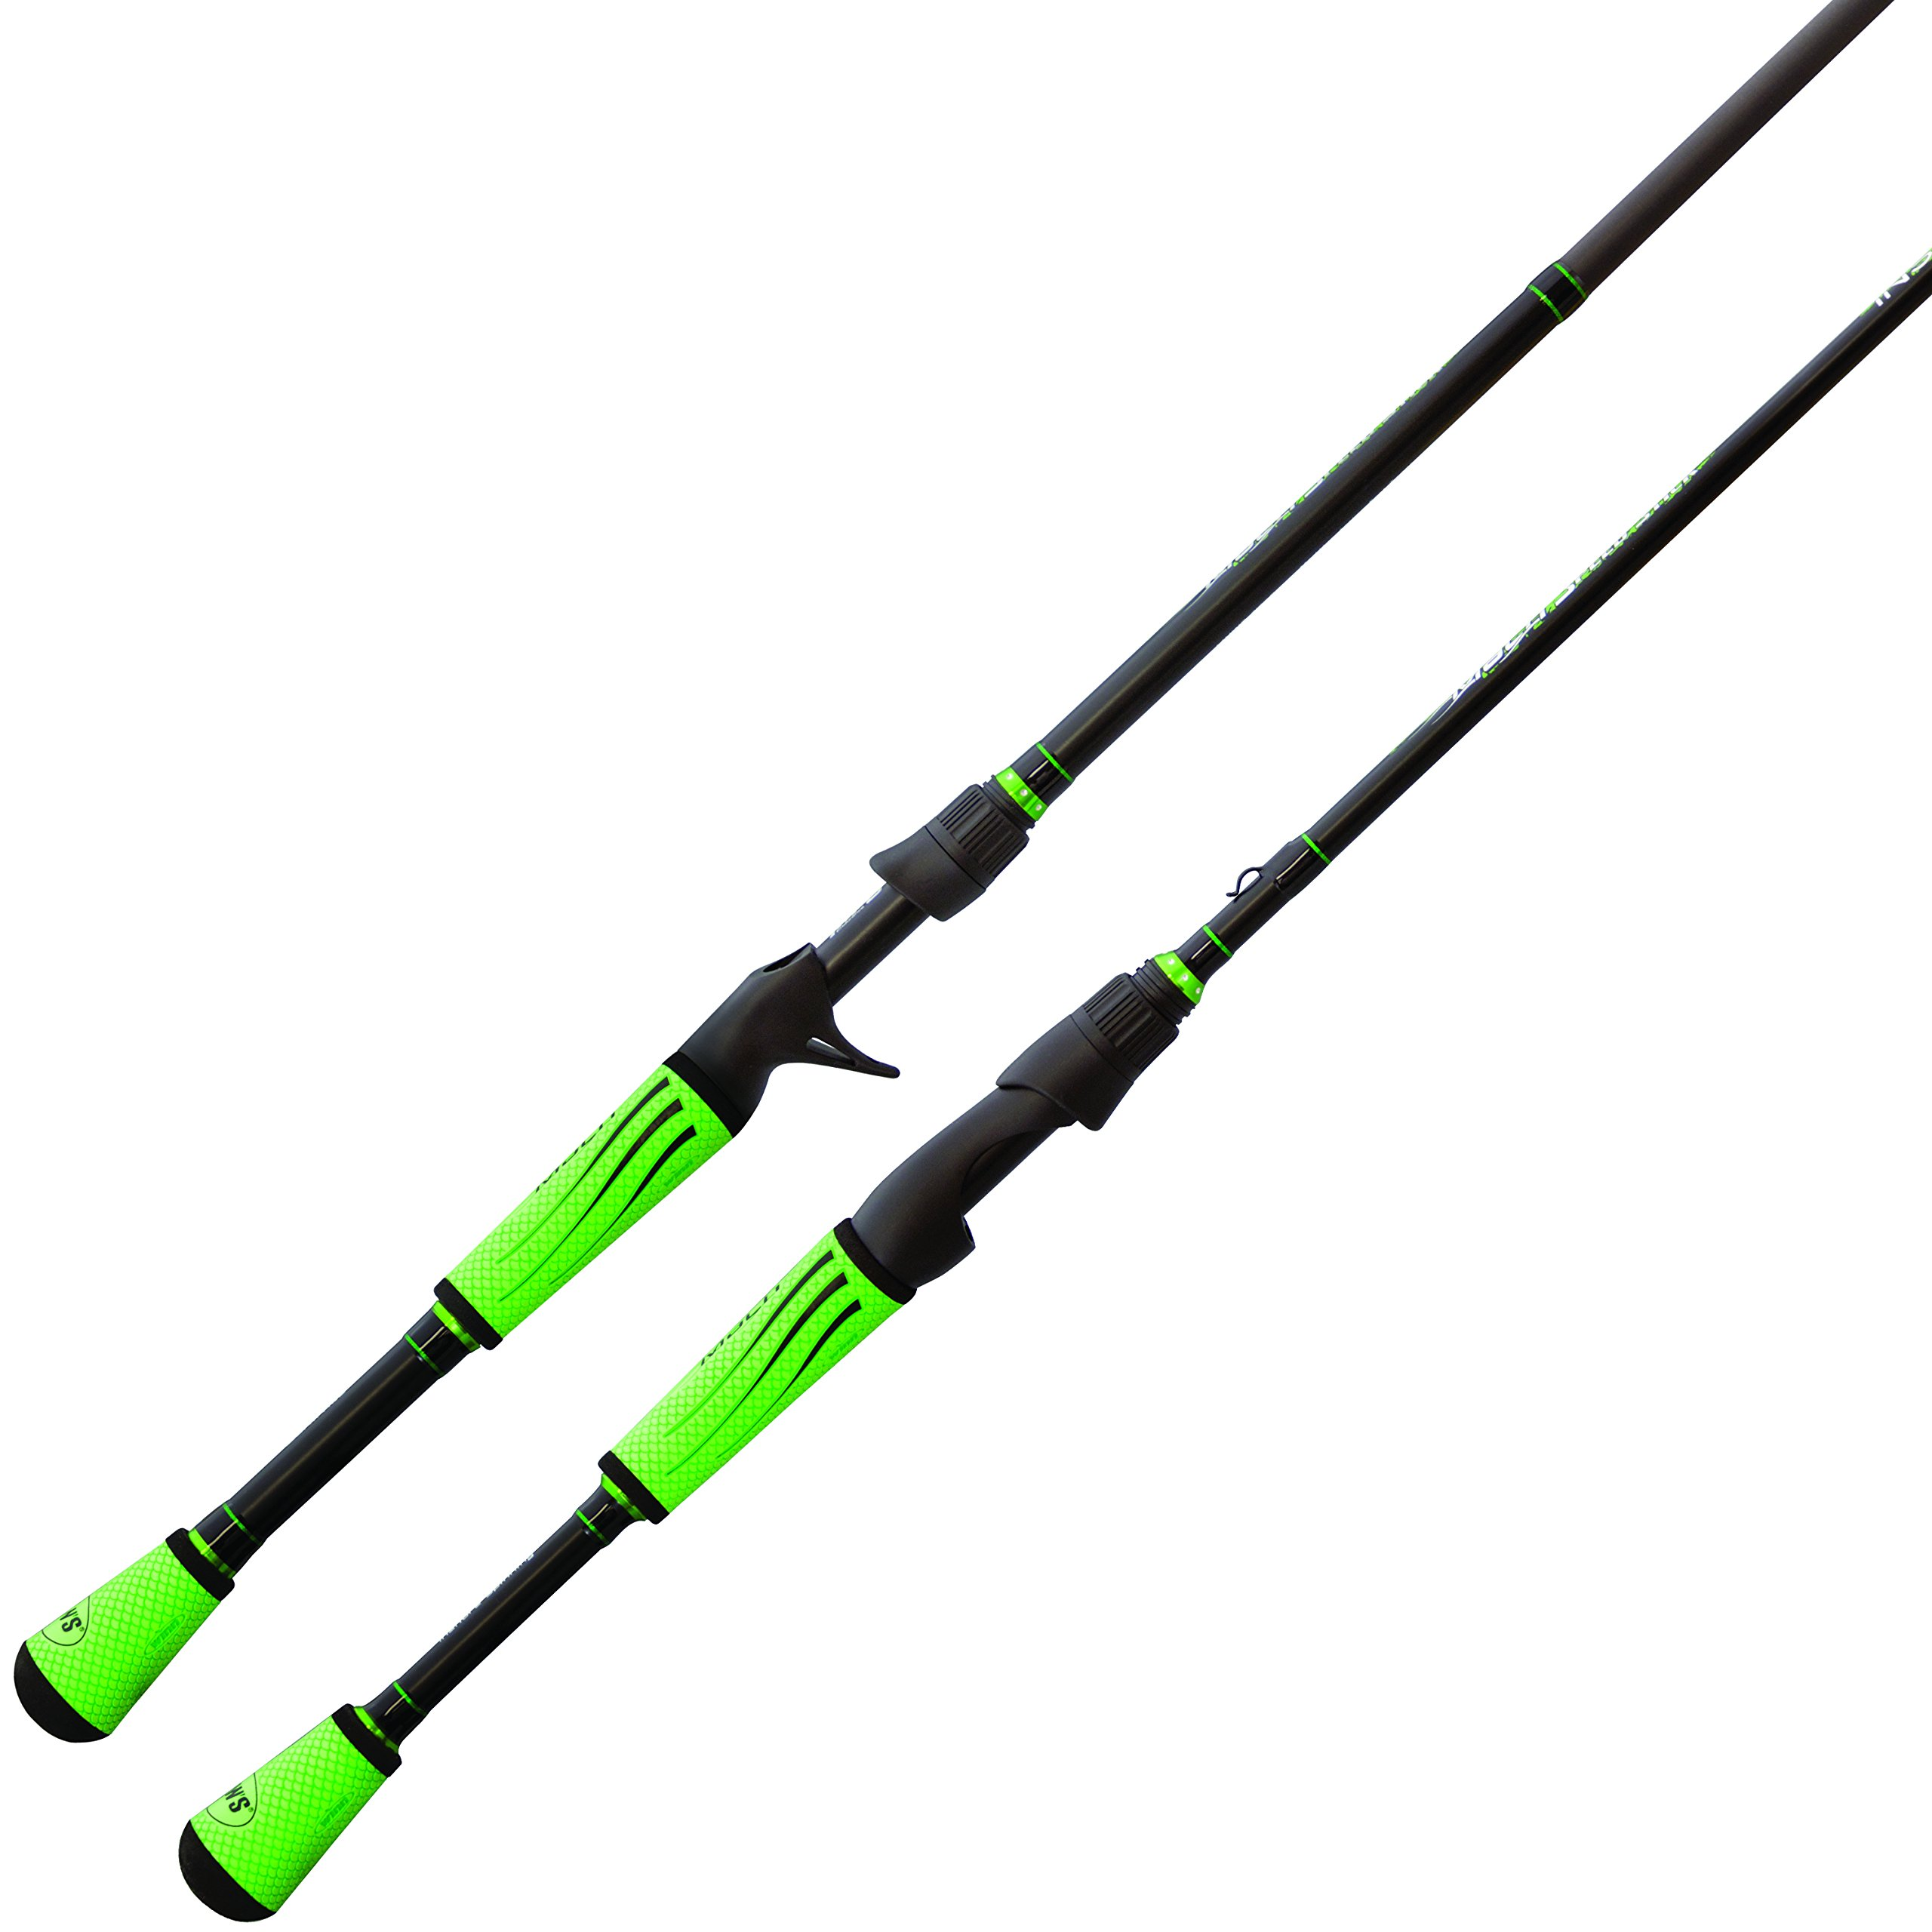 Lews Fishing Mach Speed Stick IM6 Spinning MHMSR Rods